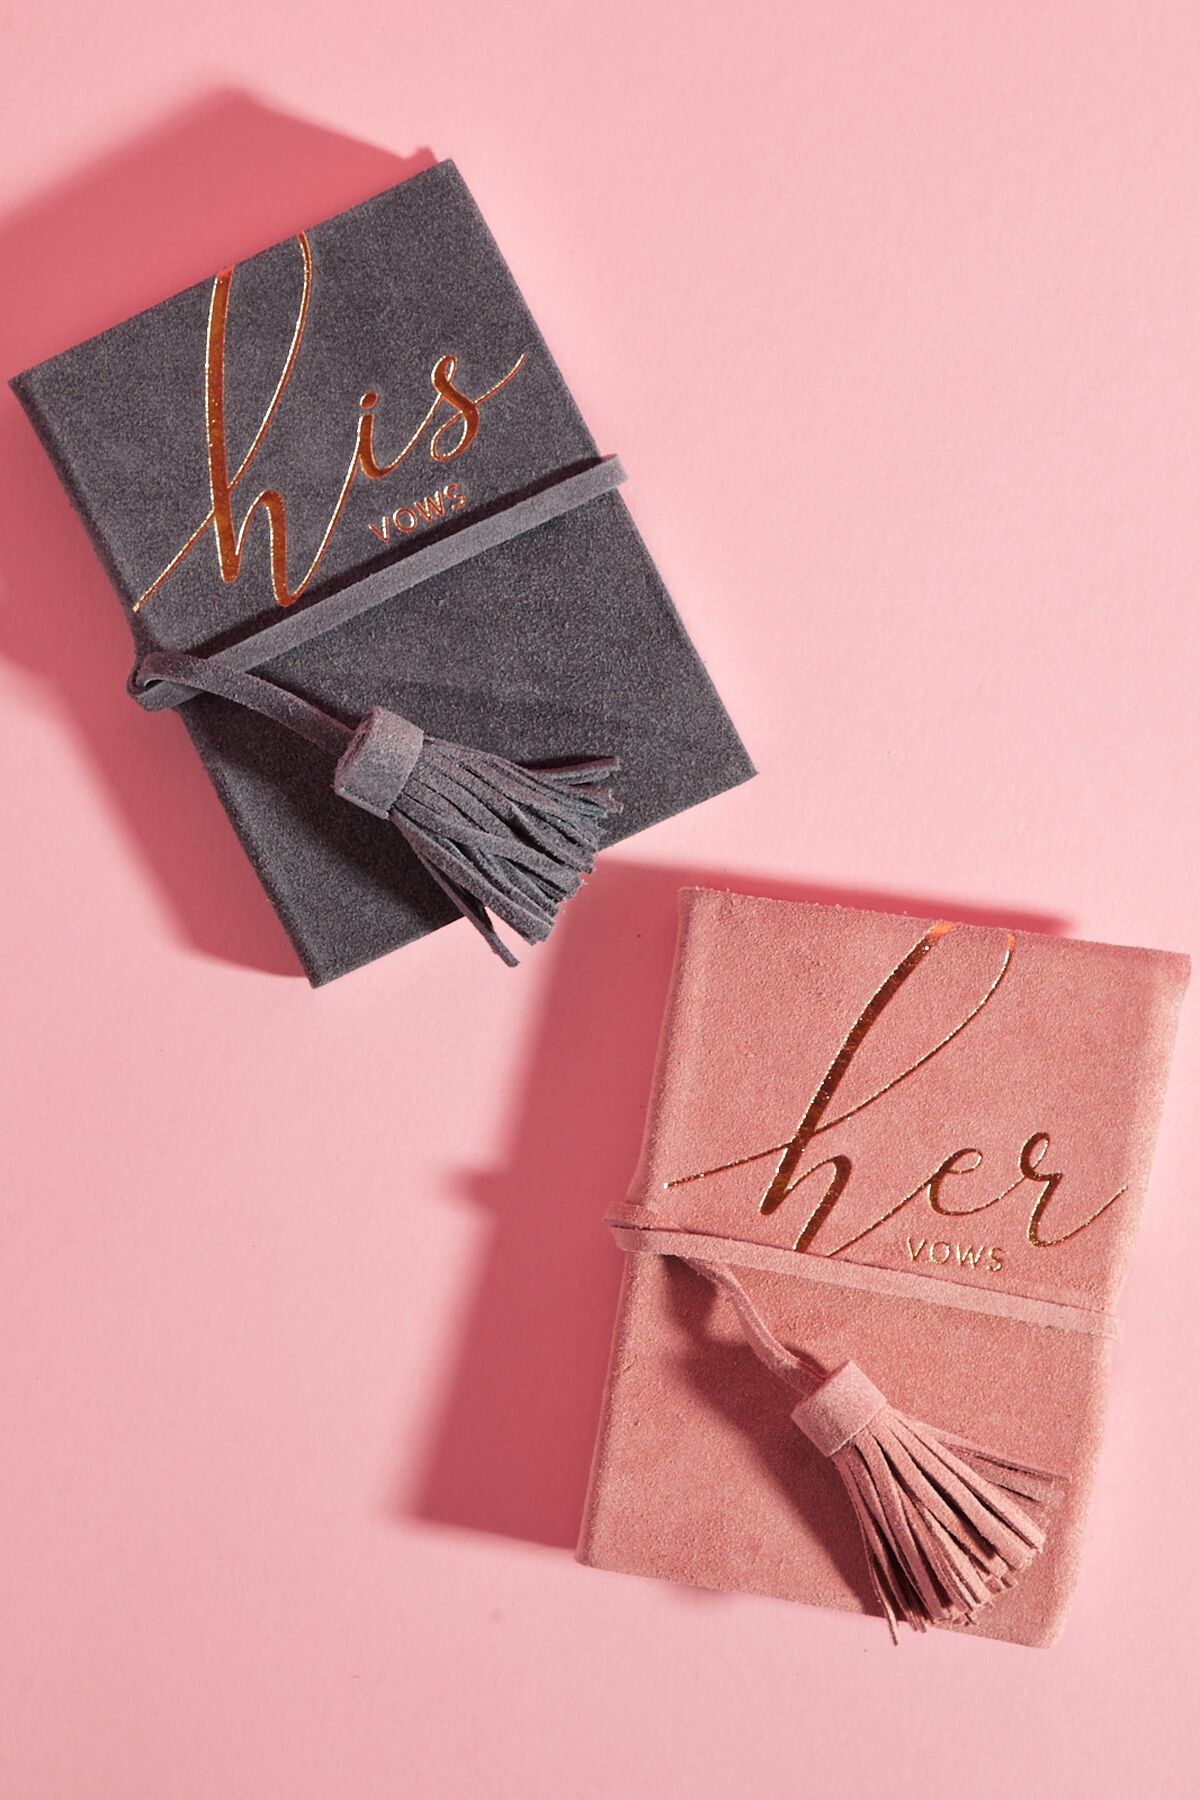 HER VOW BOOK